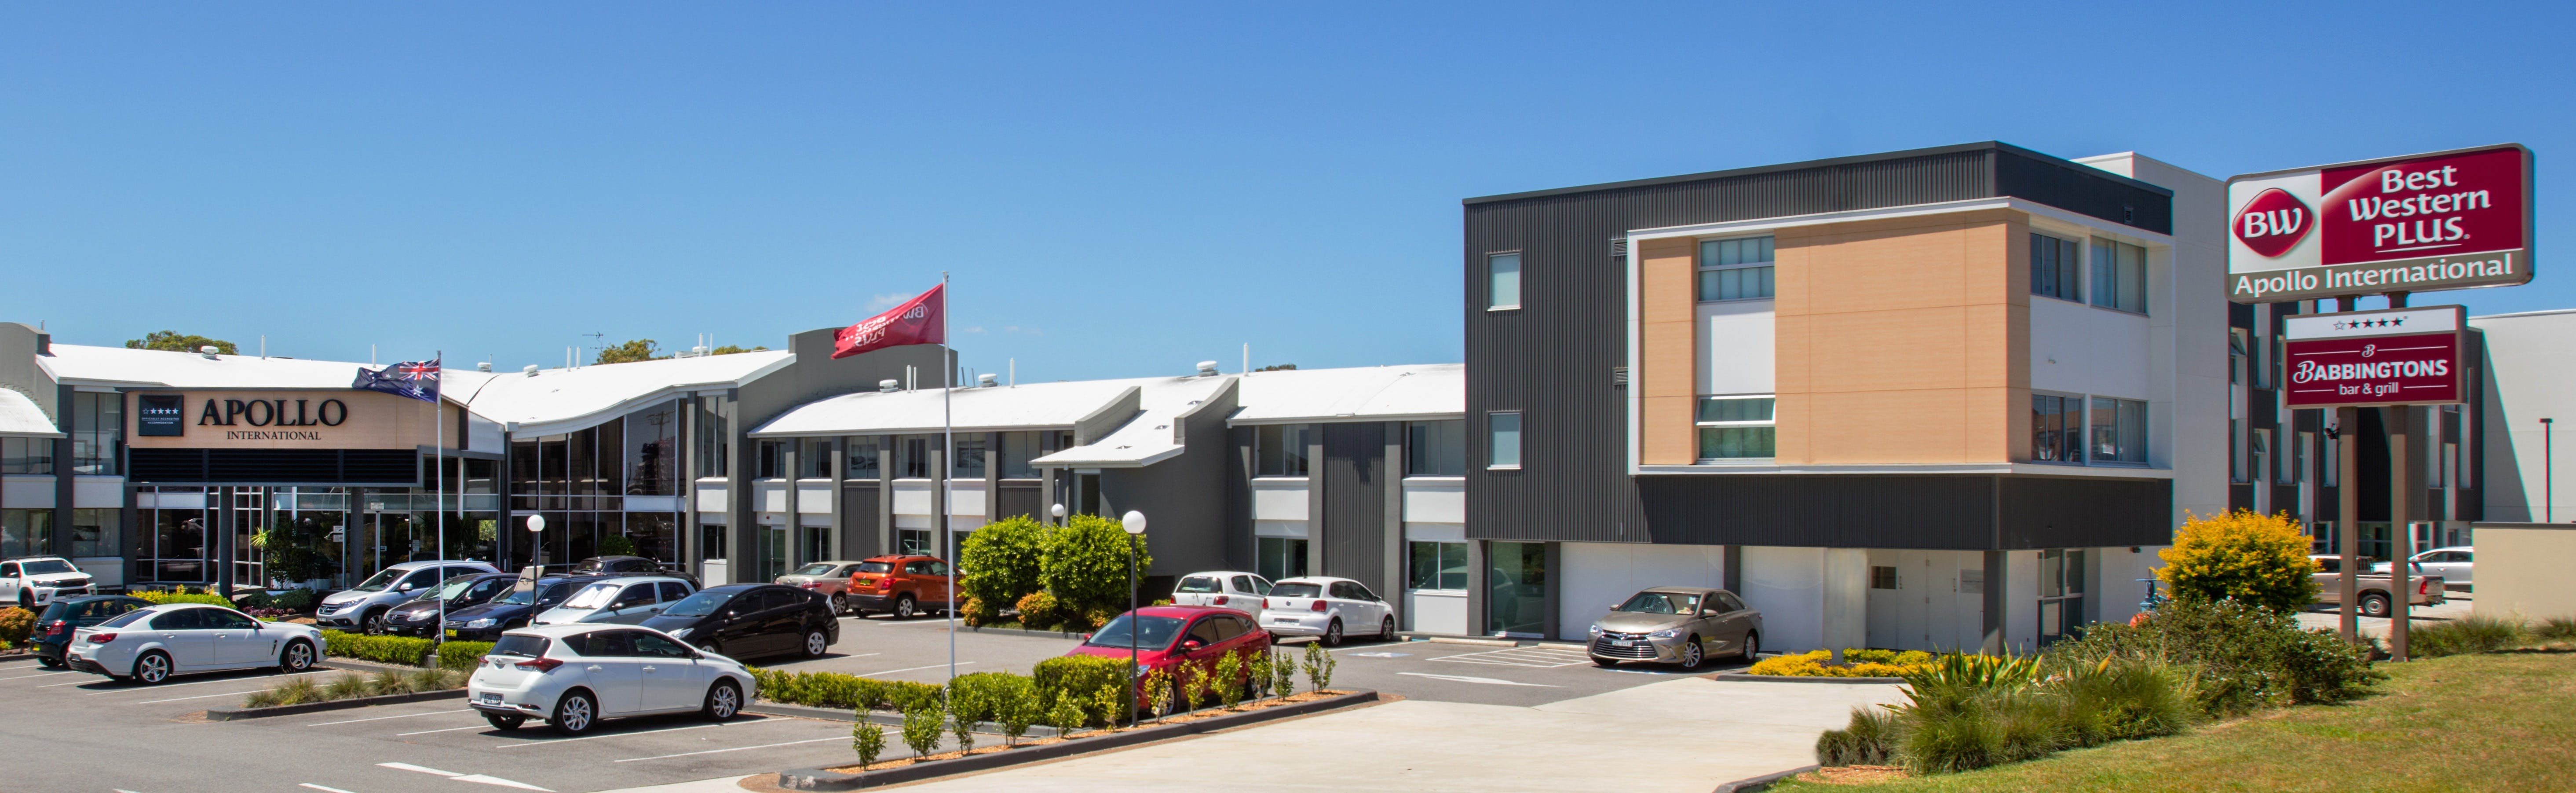 Best Western Plus Apollo International Hotel - Accommodation Port Macquarie